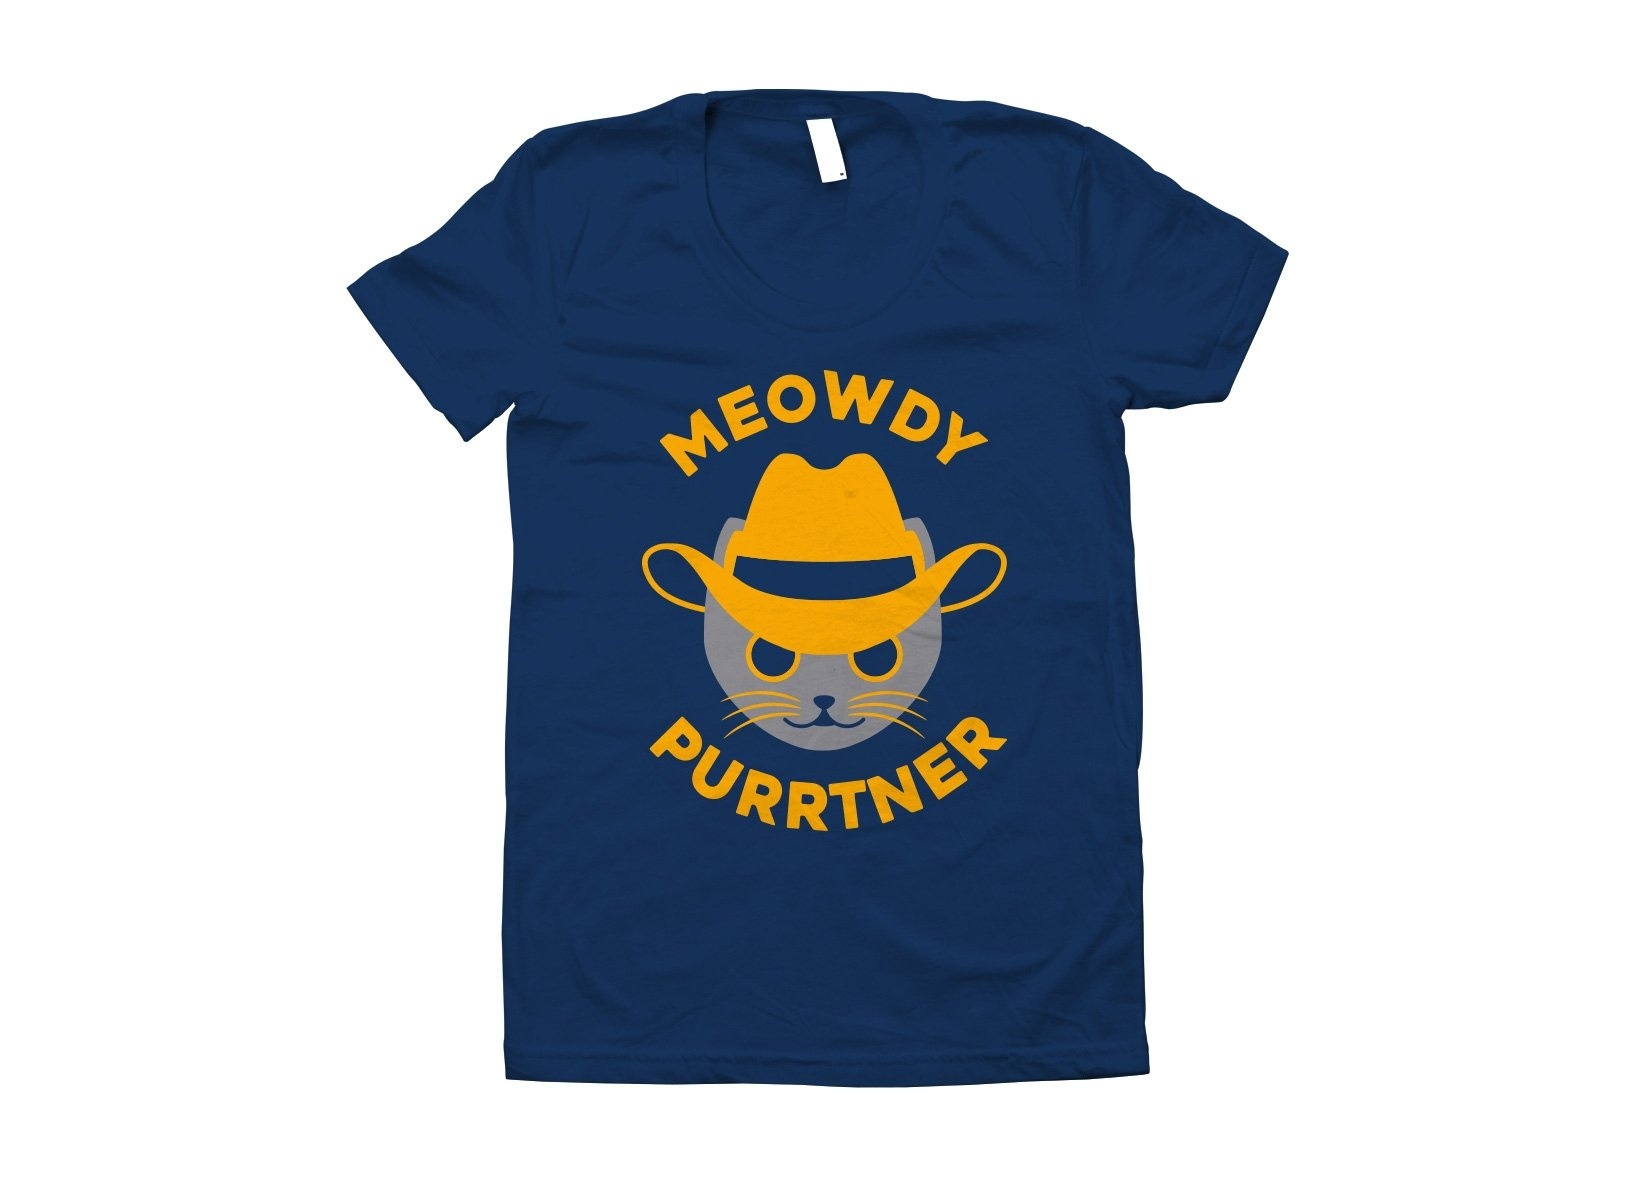 Meowdy Purrtner on Juniors T-Shirt